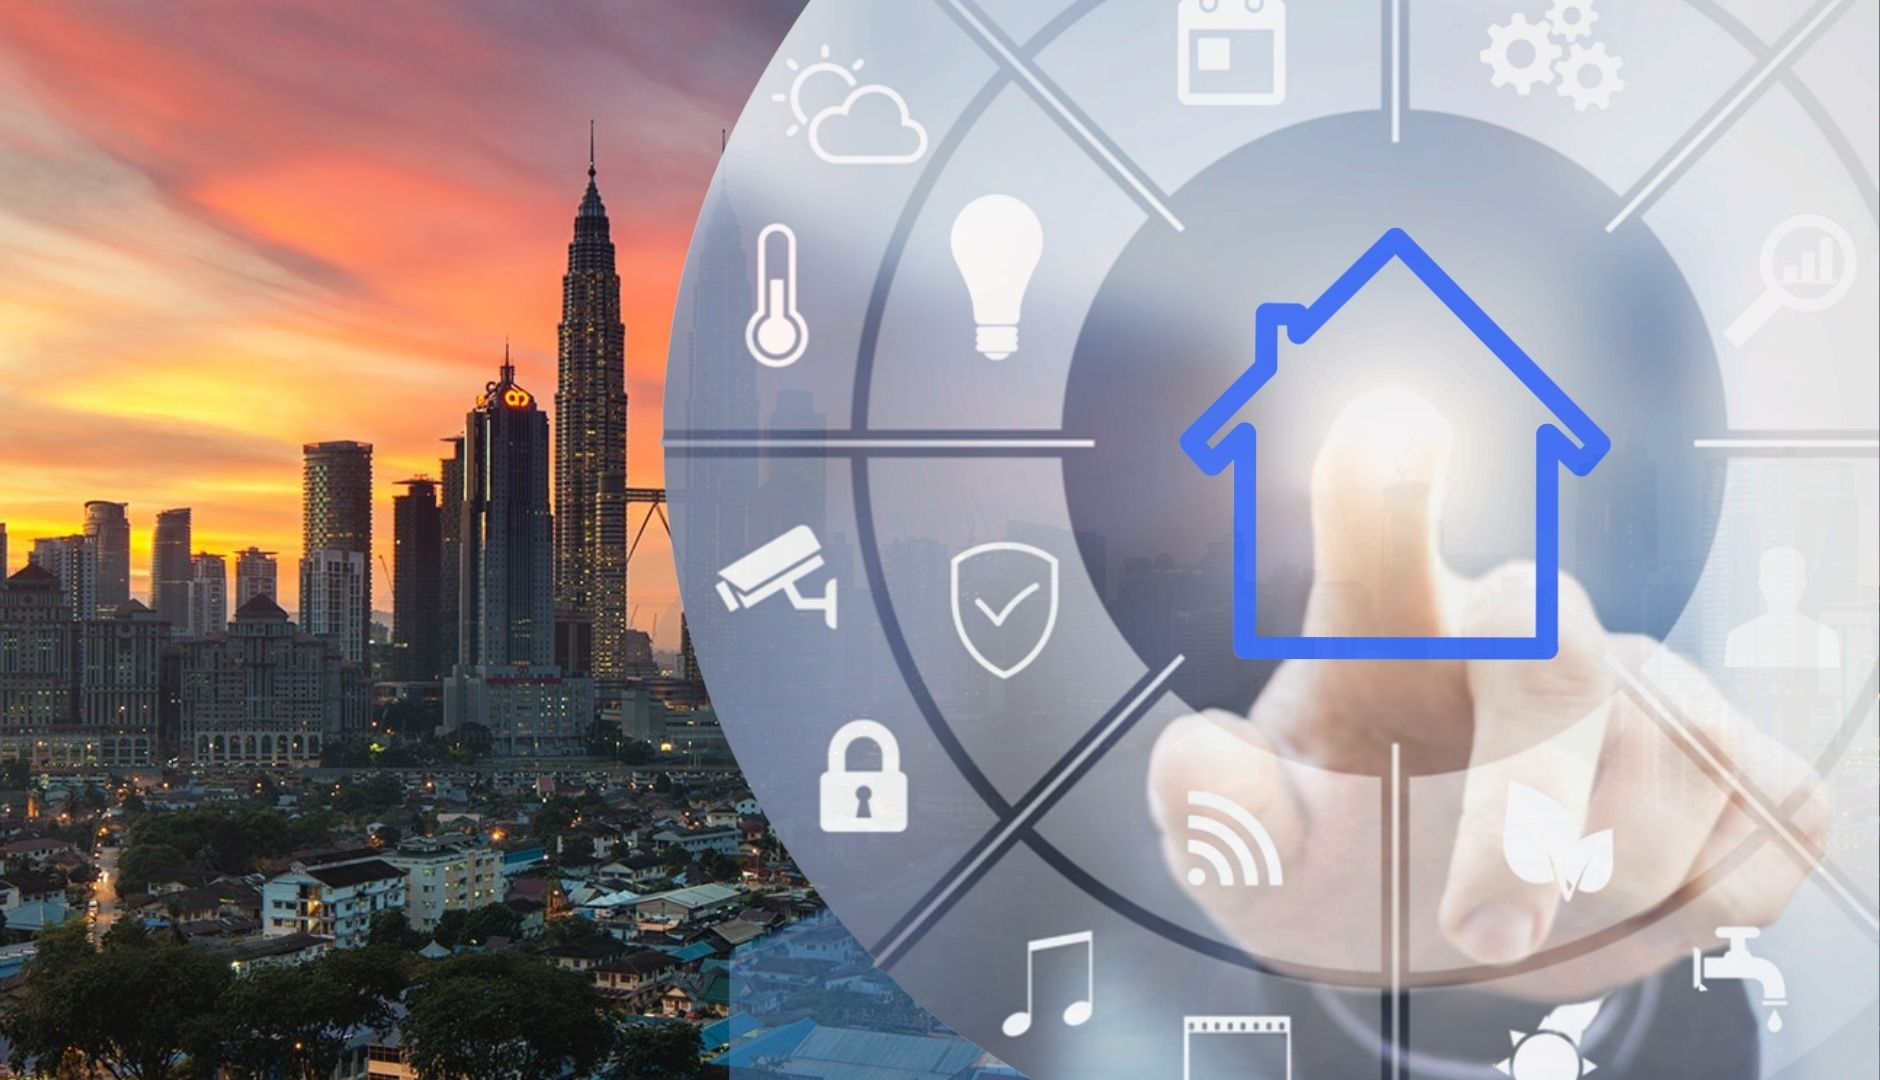 Proptech wave, started long ago is now moving fast towards Proptech 4.0